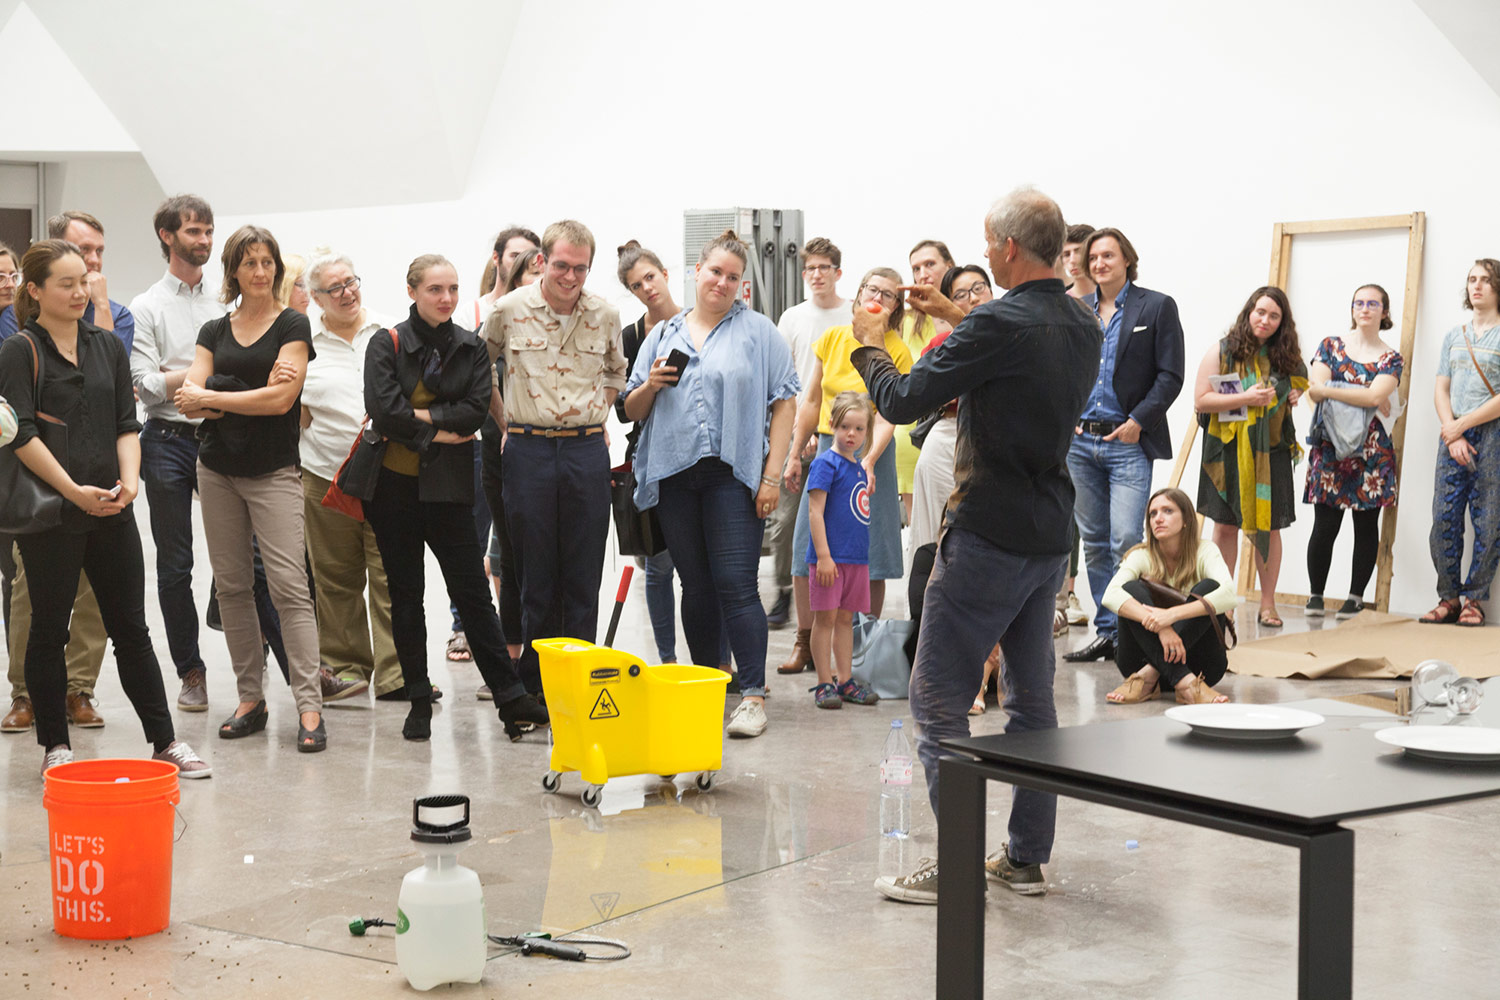 A crowd looks on a man gesticulating in front of them, miscellaneous materials strewn around the exhibition space.